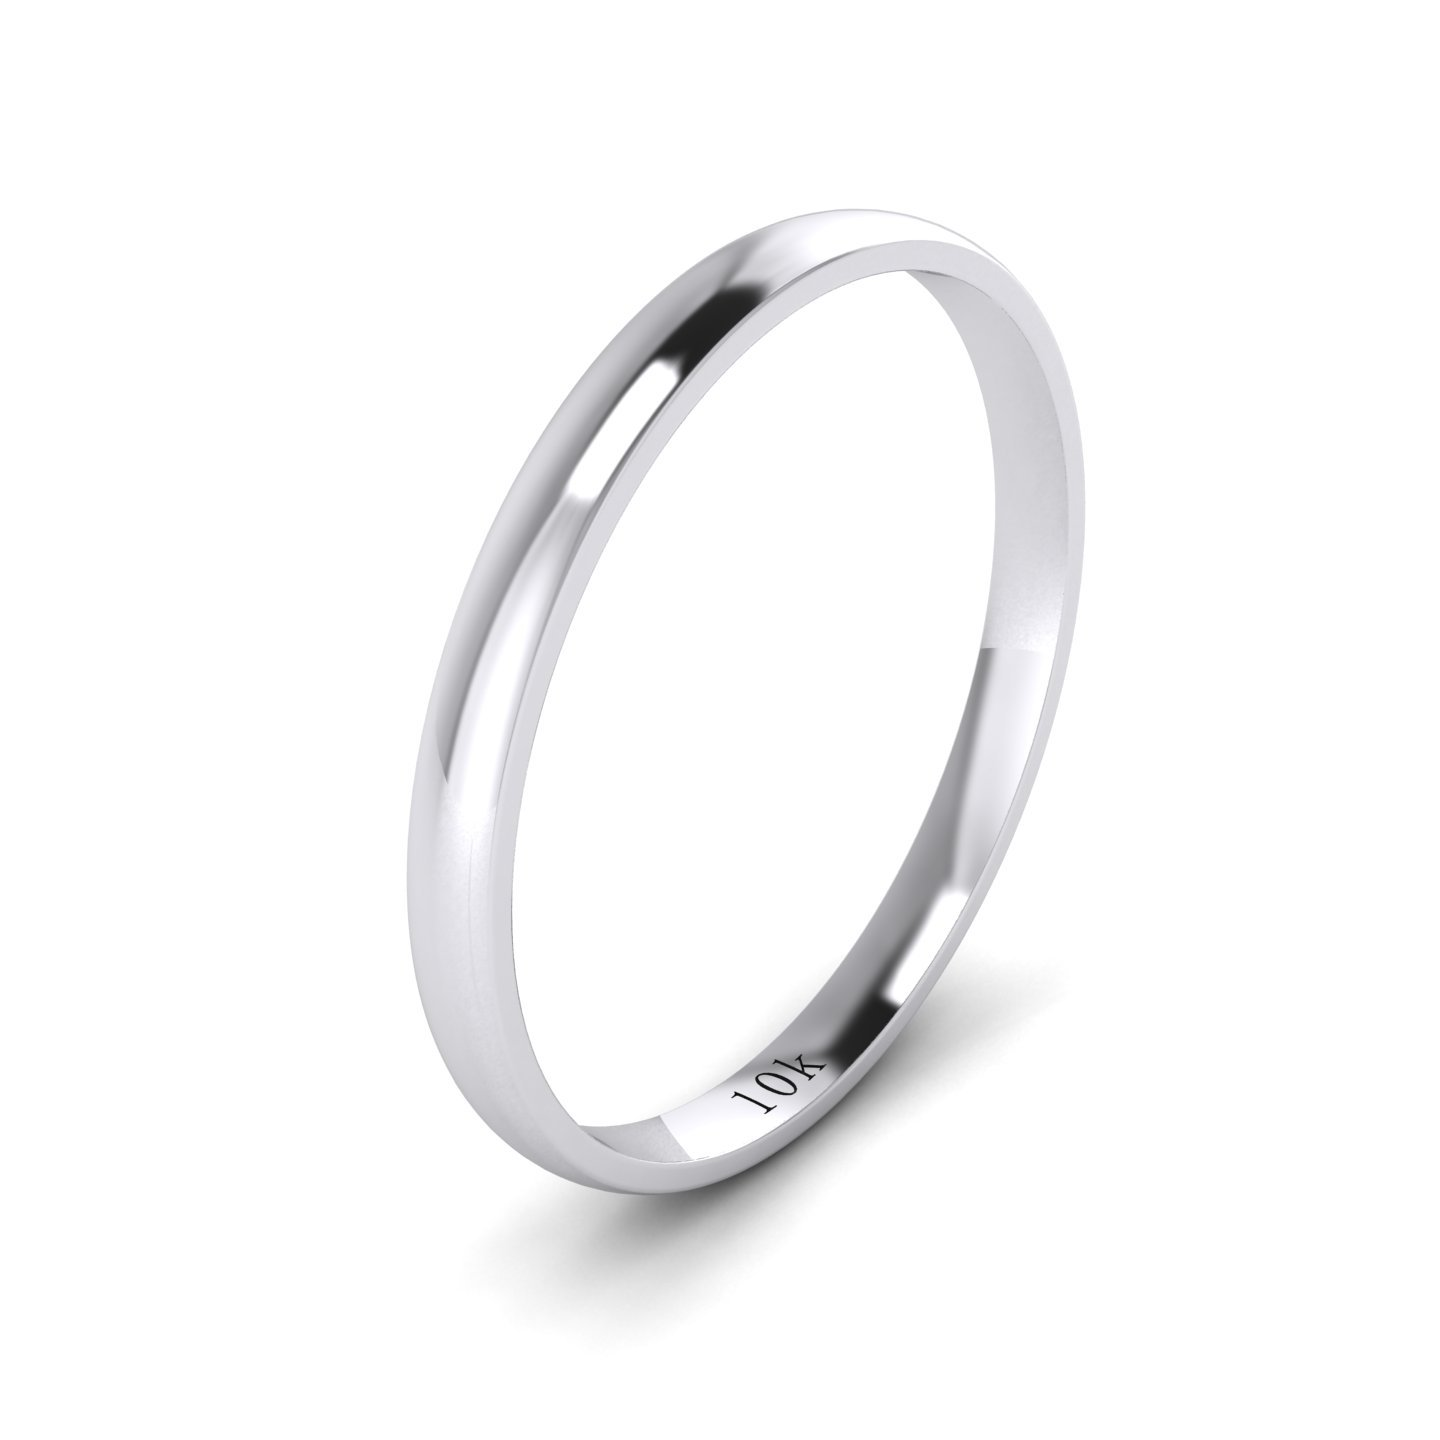 LANDA JEWEL Unisex 10k White Gold 2mm Light Court Shape Comfort Fit Polished Wedding Ring Plain Band (6)